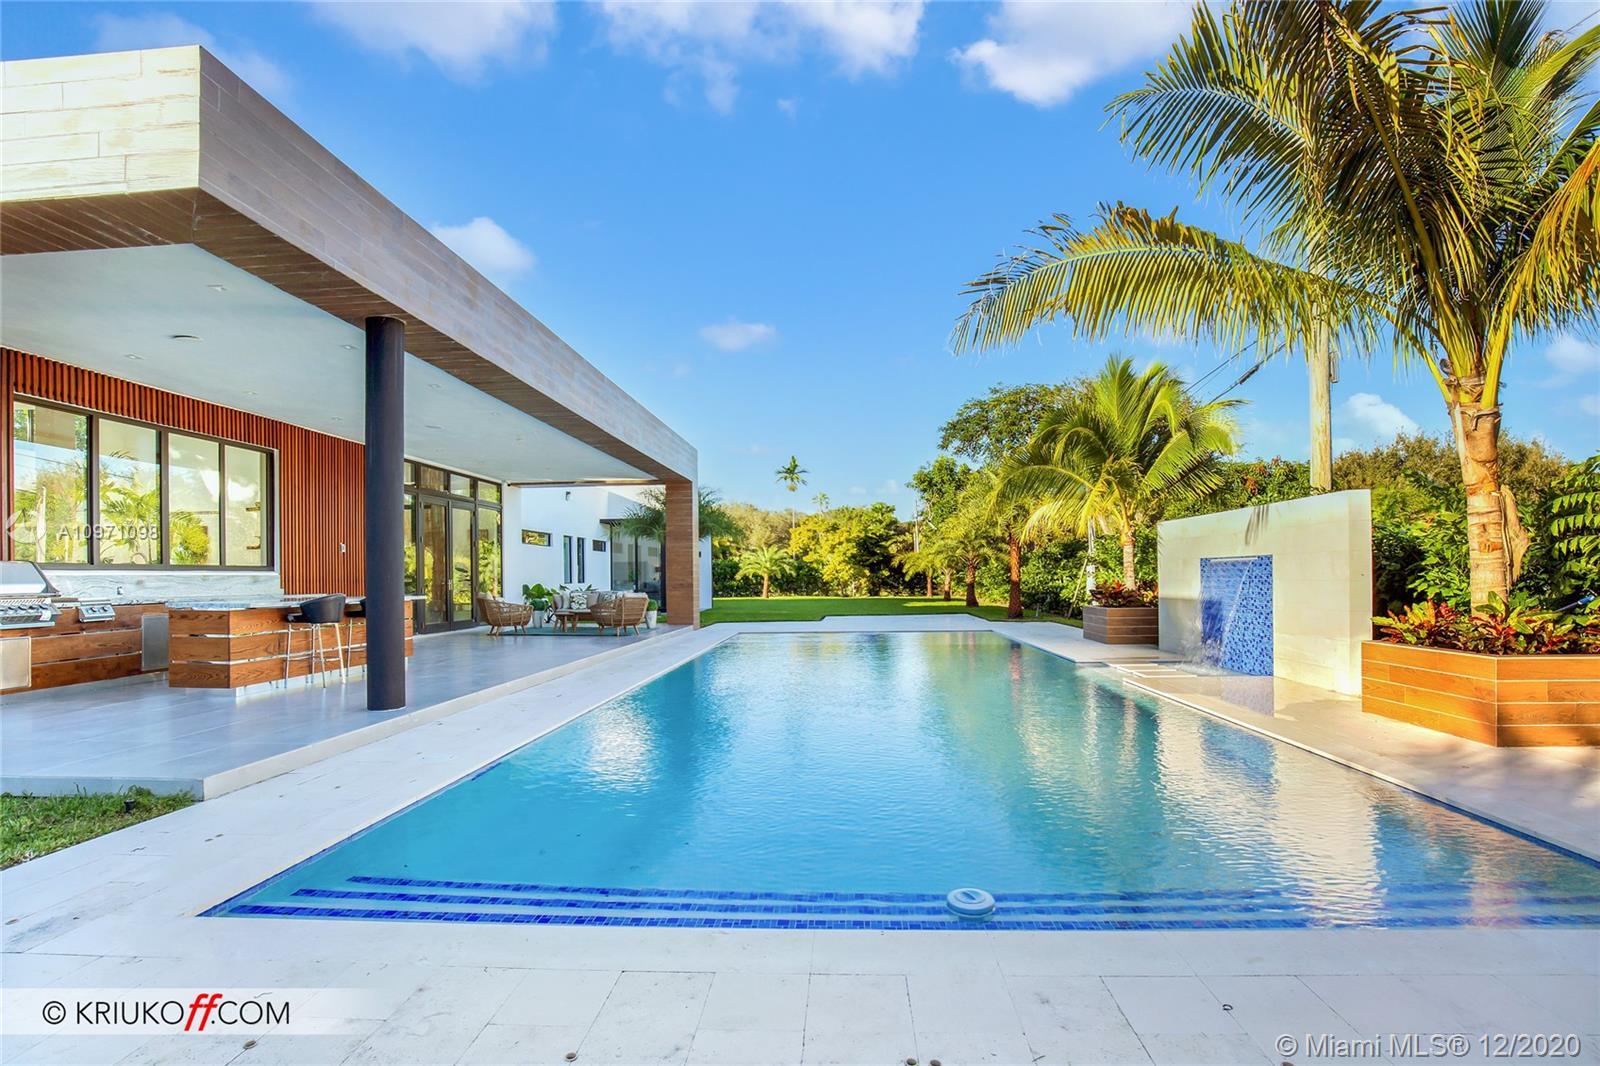 Search no further!! Dream home! Custom built gorgeous modern concept one story 7 Bedrooms and 6 Full bathrooms 6,250 square feet of living area home sits on 37,897 sf of land. Top of the line appliances Subzero refrigerator. Completely intelligent, WIFI already installed and access point are ready. Electric Car charger available, spacious Terrace with amazing pool and Jacuzzi. A Must see!